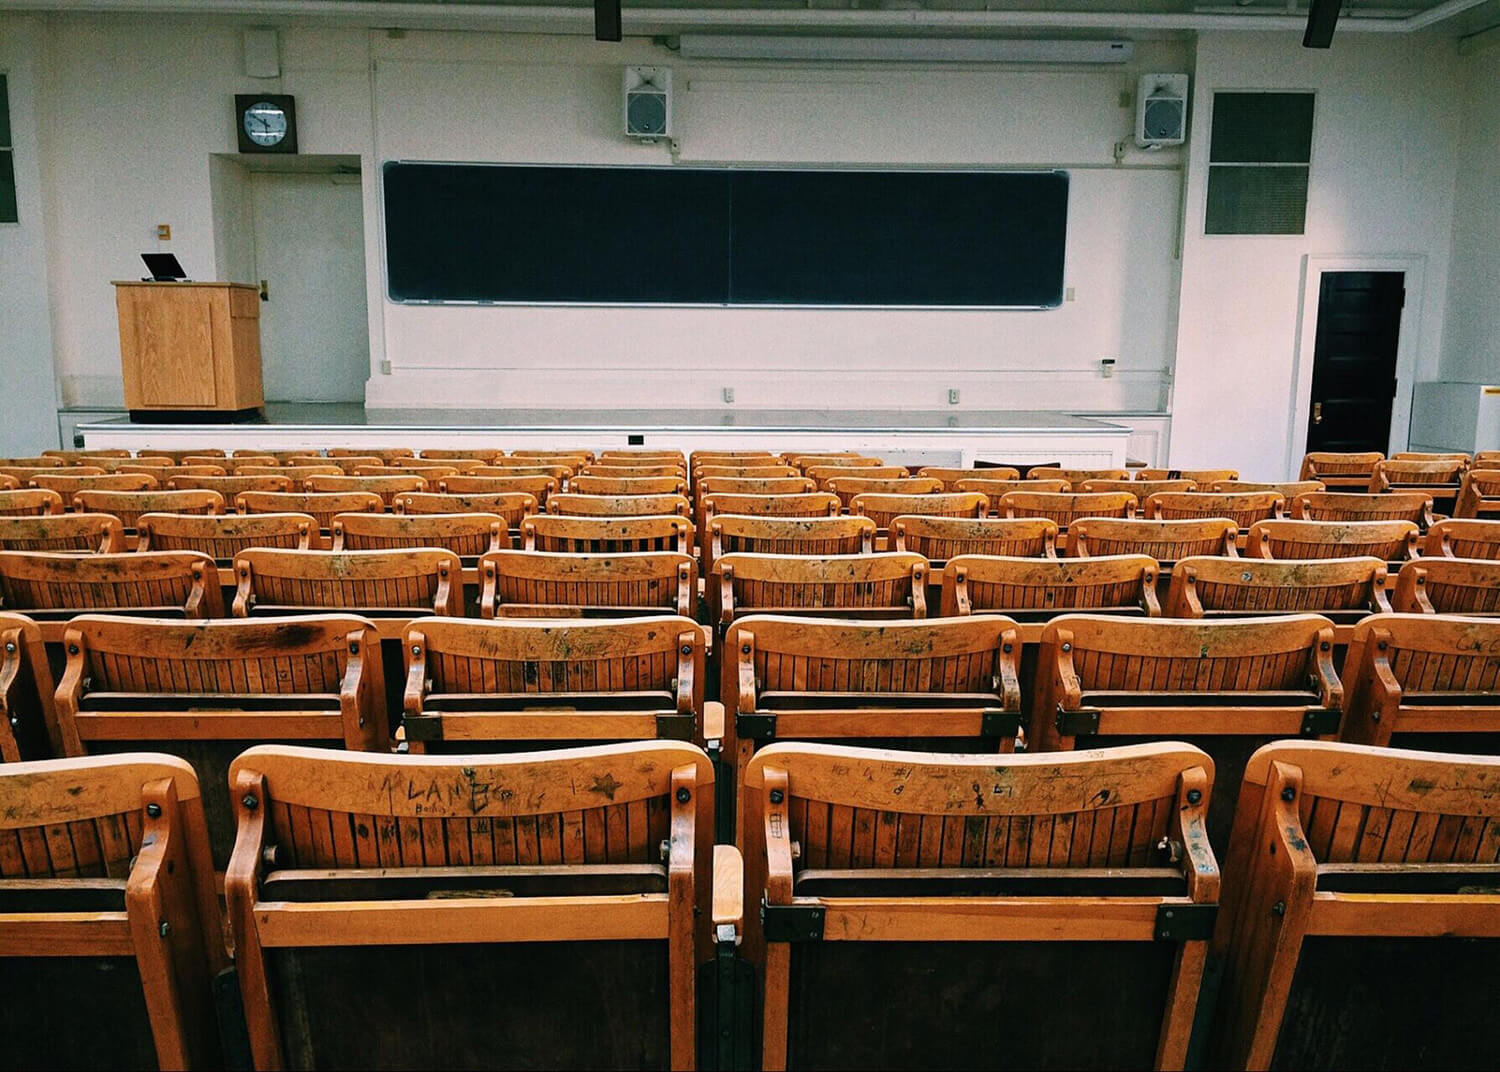 A classroom with empty seats